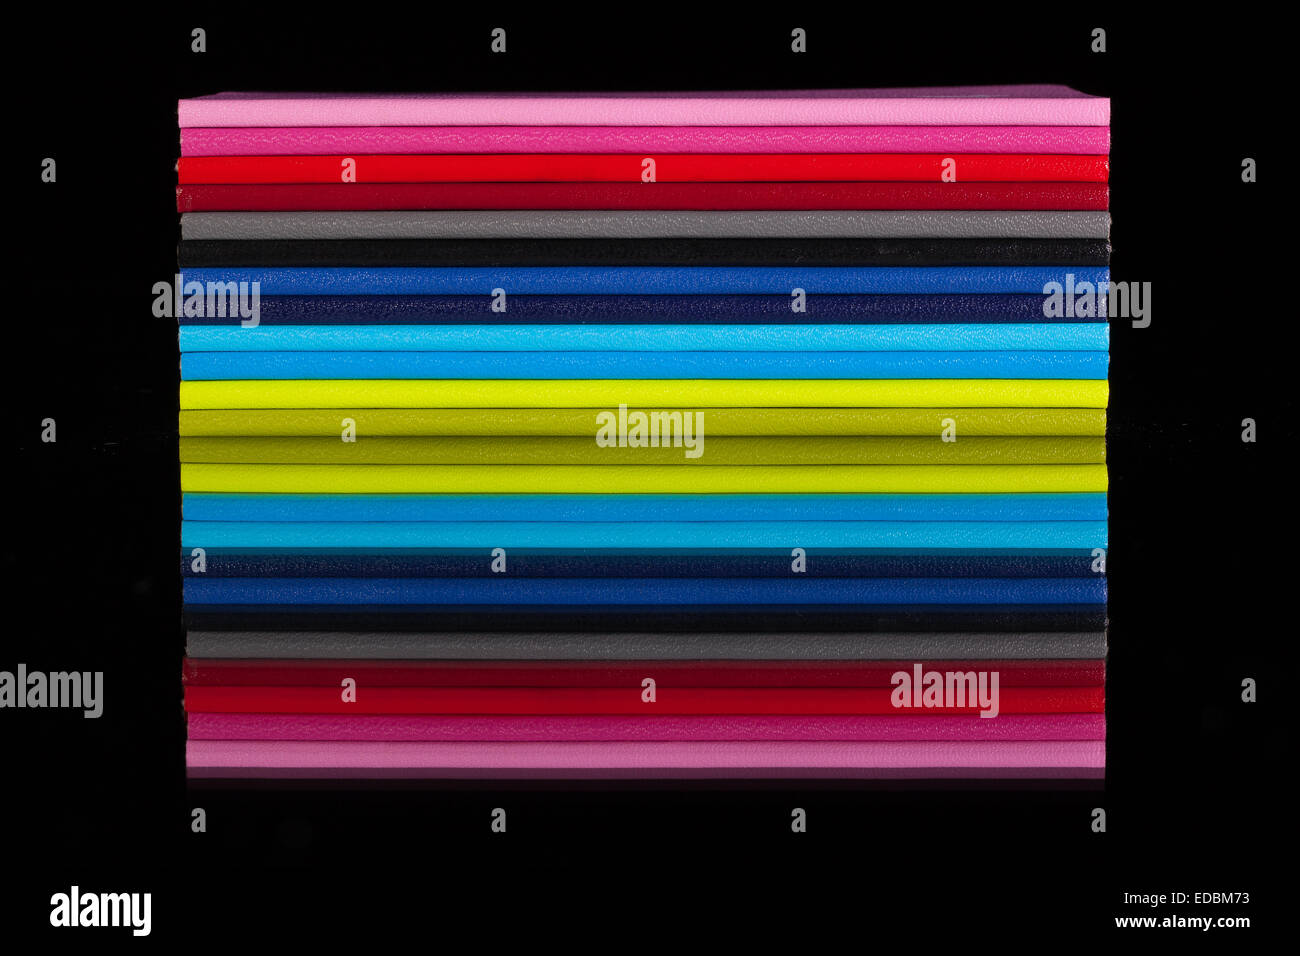 Twelve different color diaries on a black glass desk - Stock Image